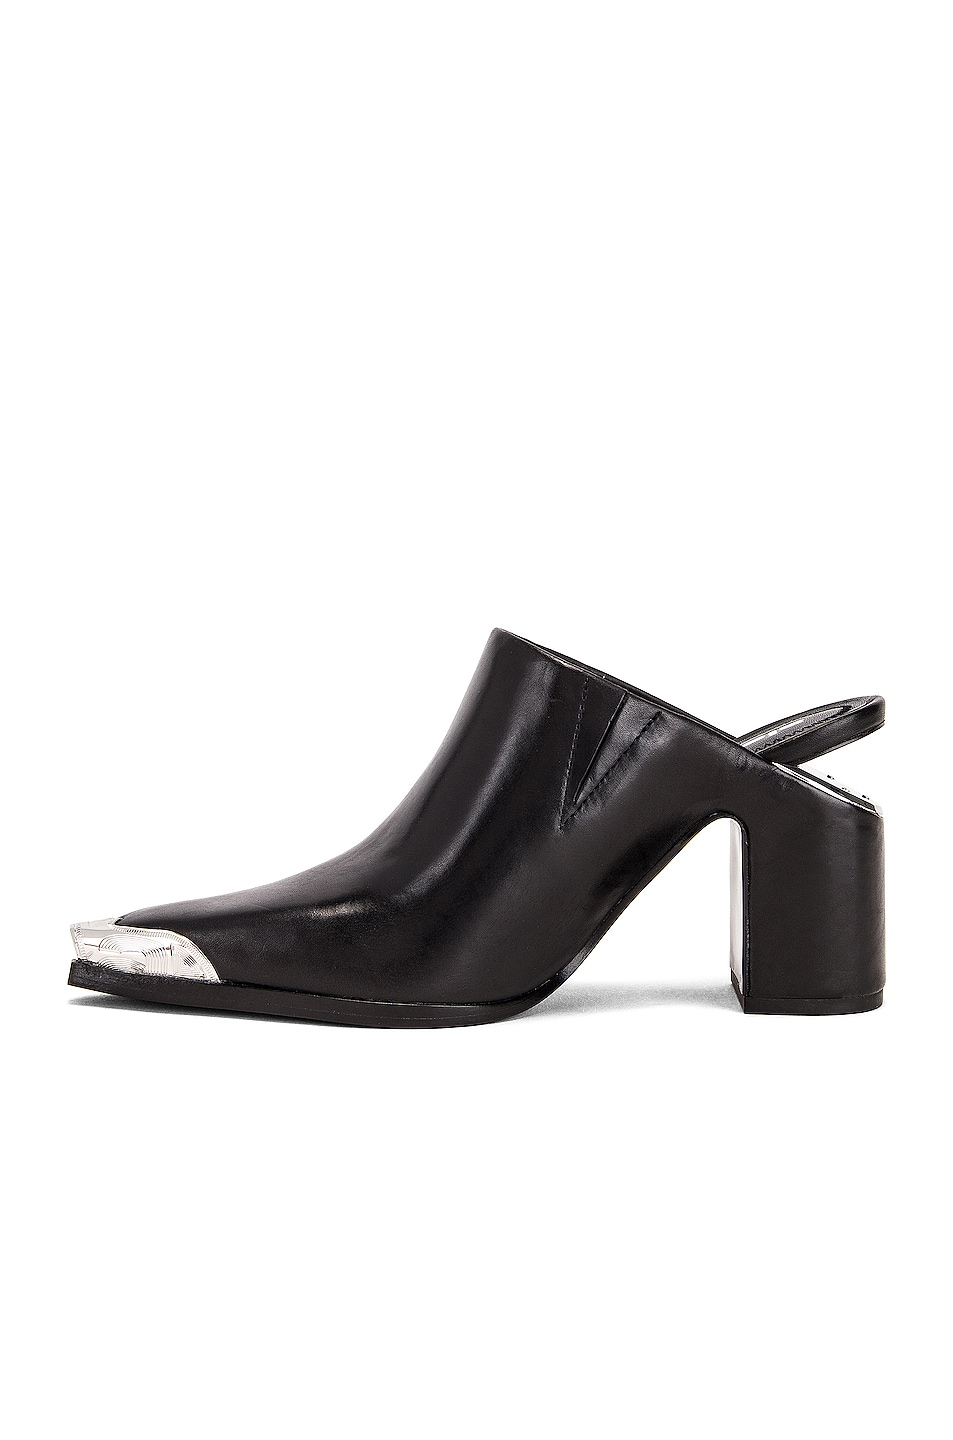 Image 5 of Alexander Wang Su Calf Mule in Black